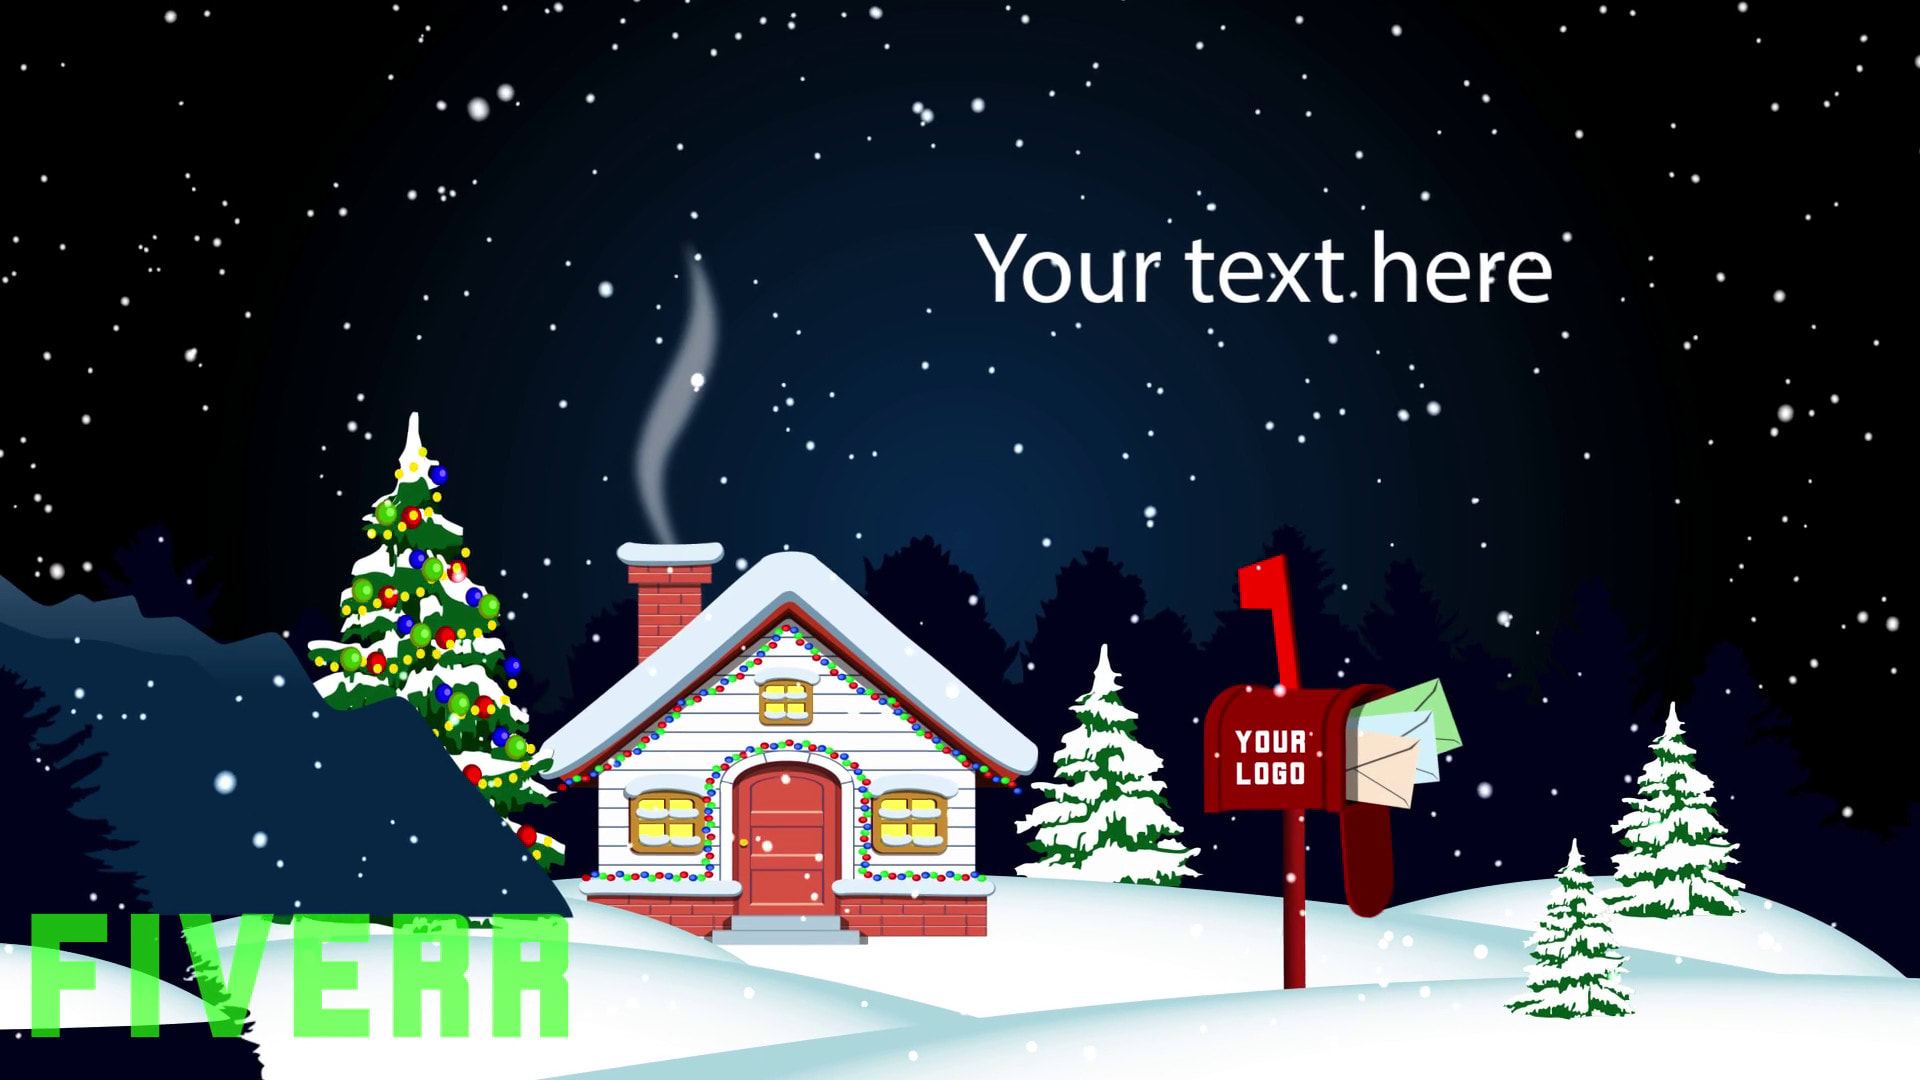 Do merry christmas and happy new year greeting video by Animatedfast